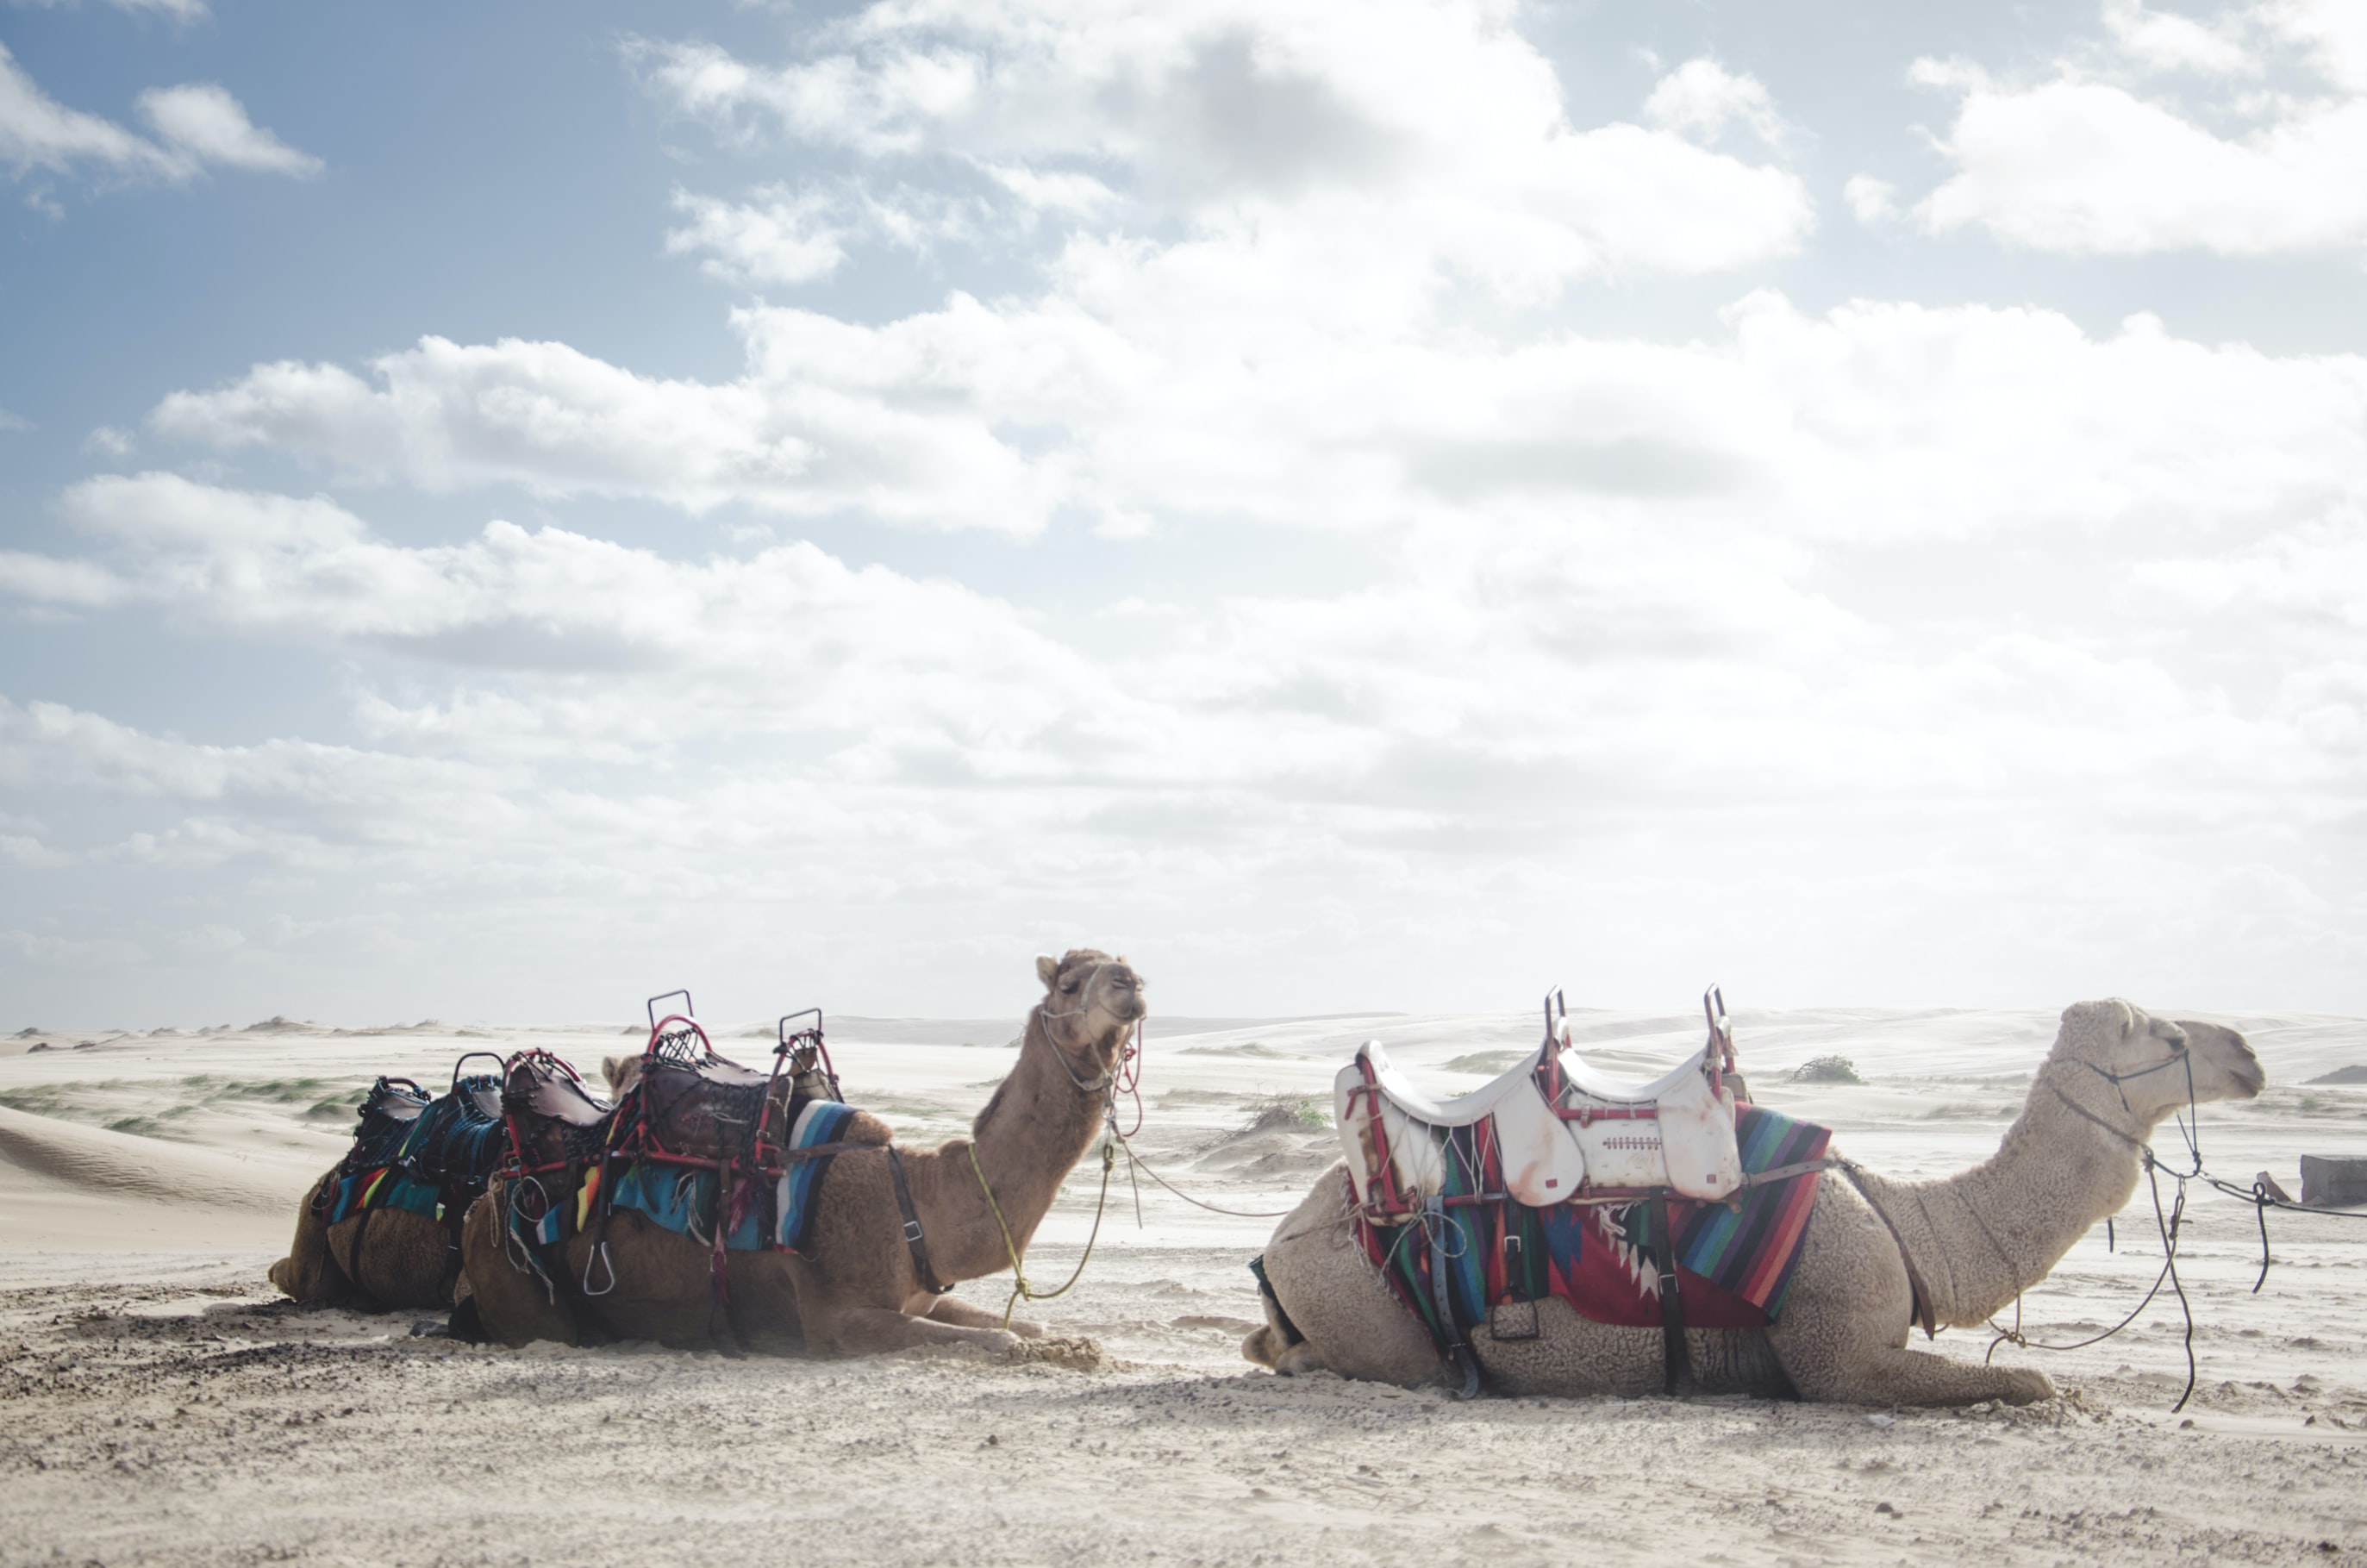 photo of two camels lying on sand